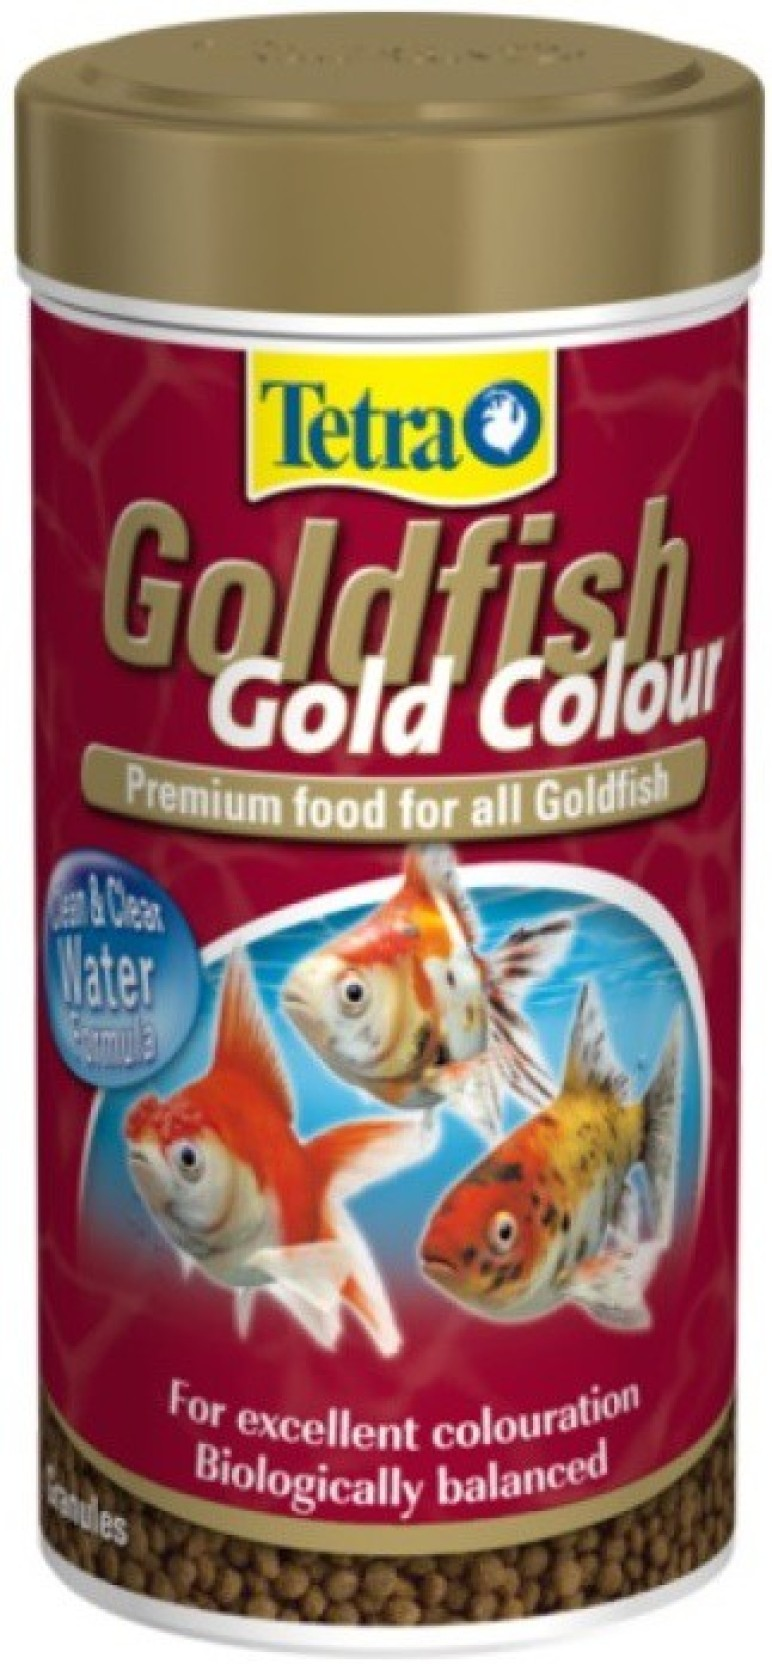 Tetra Goldfish Gold Colour 75g/250ml | For Excellent Coloration ...